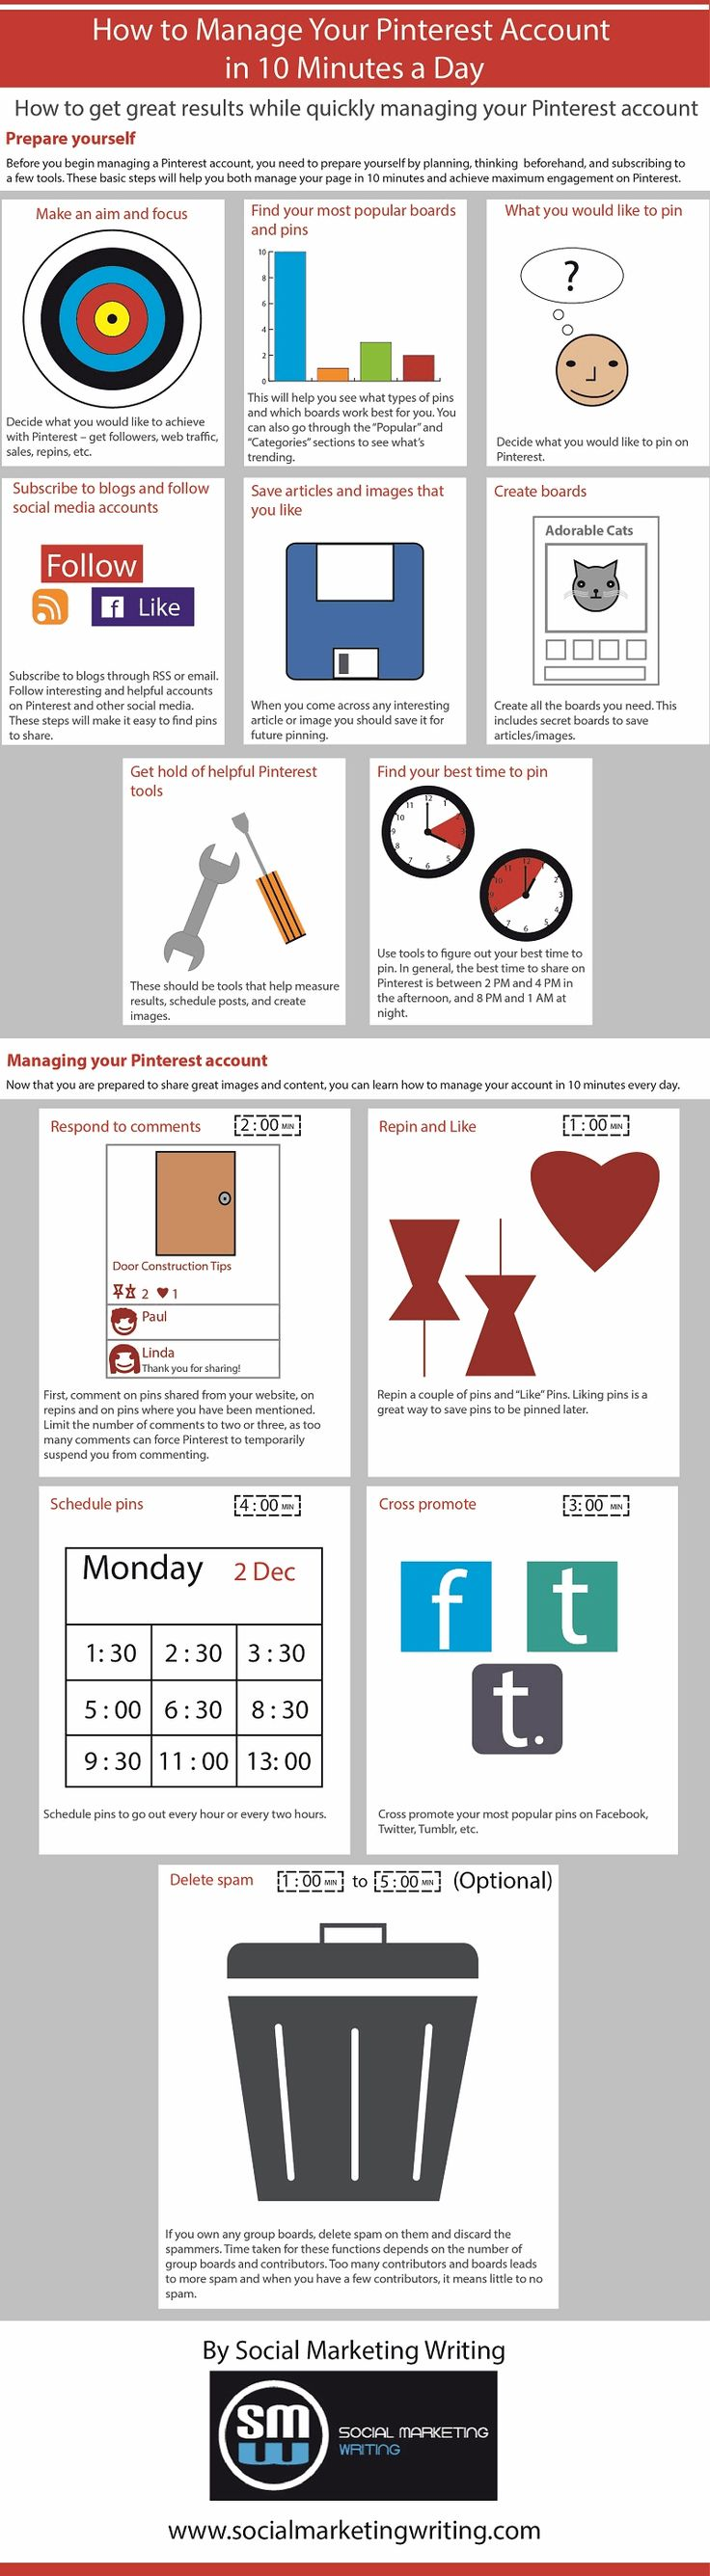 Manage Your Pinterest Account in 10 Minutes a Day [Infographic]